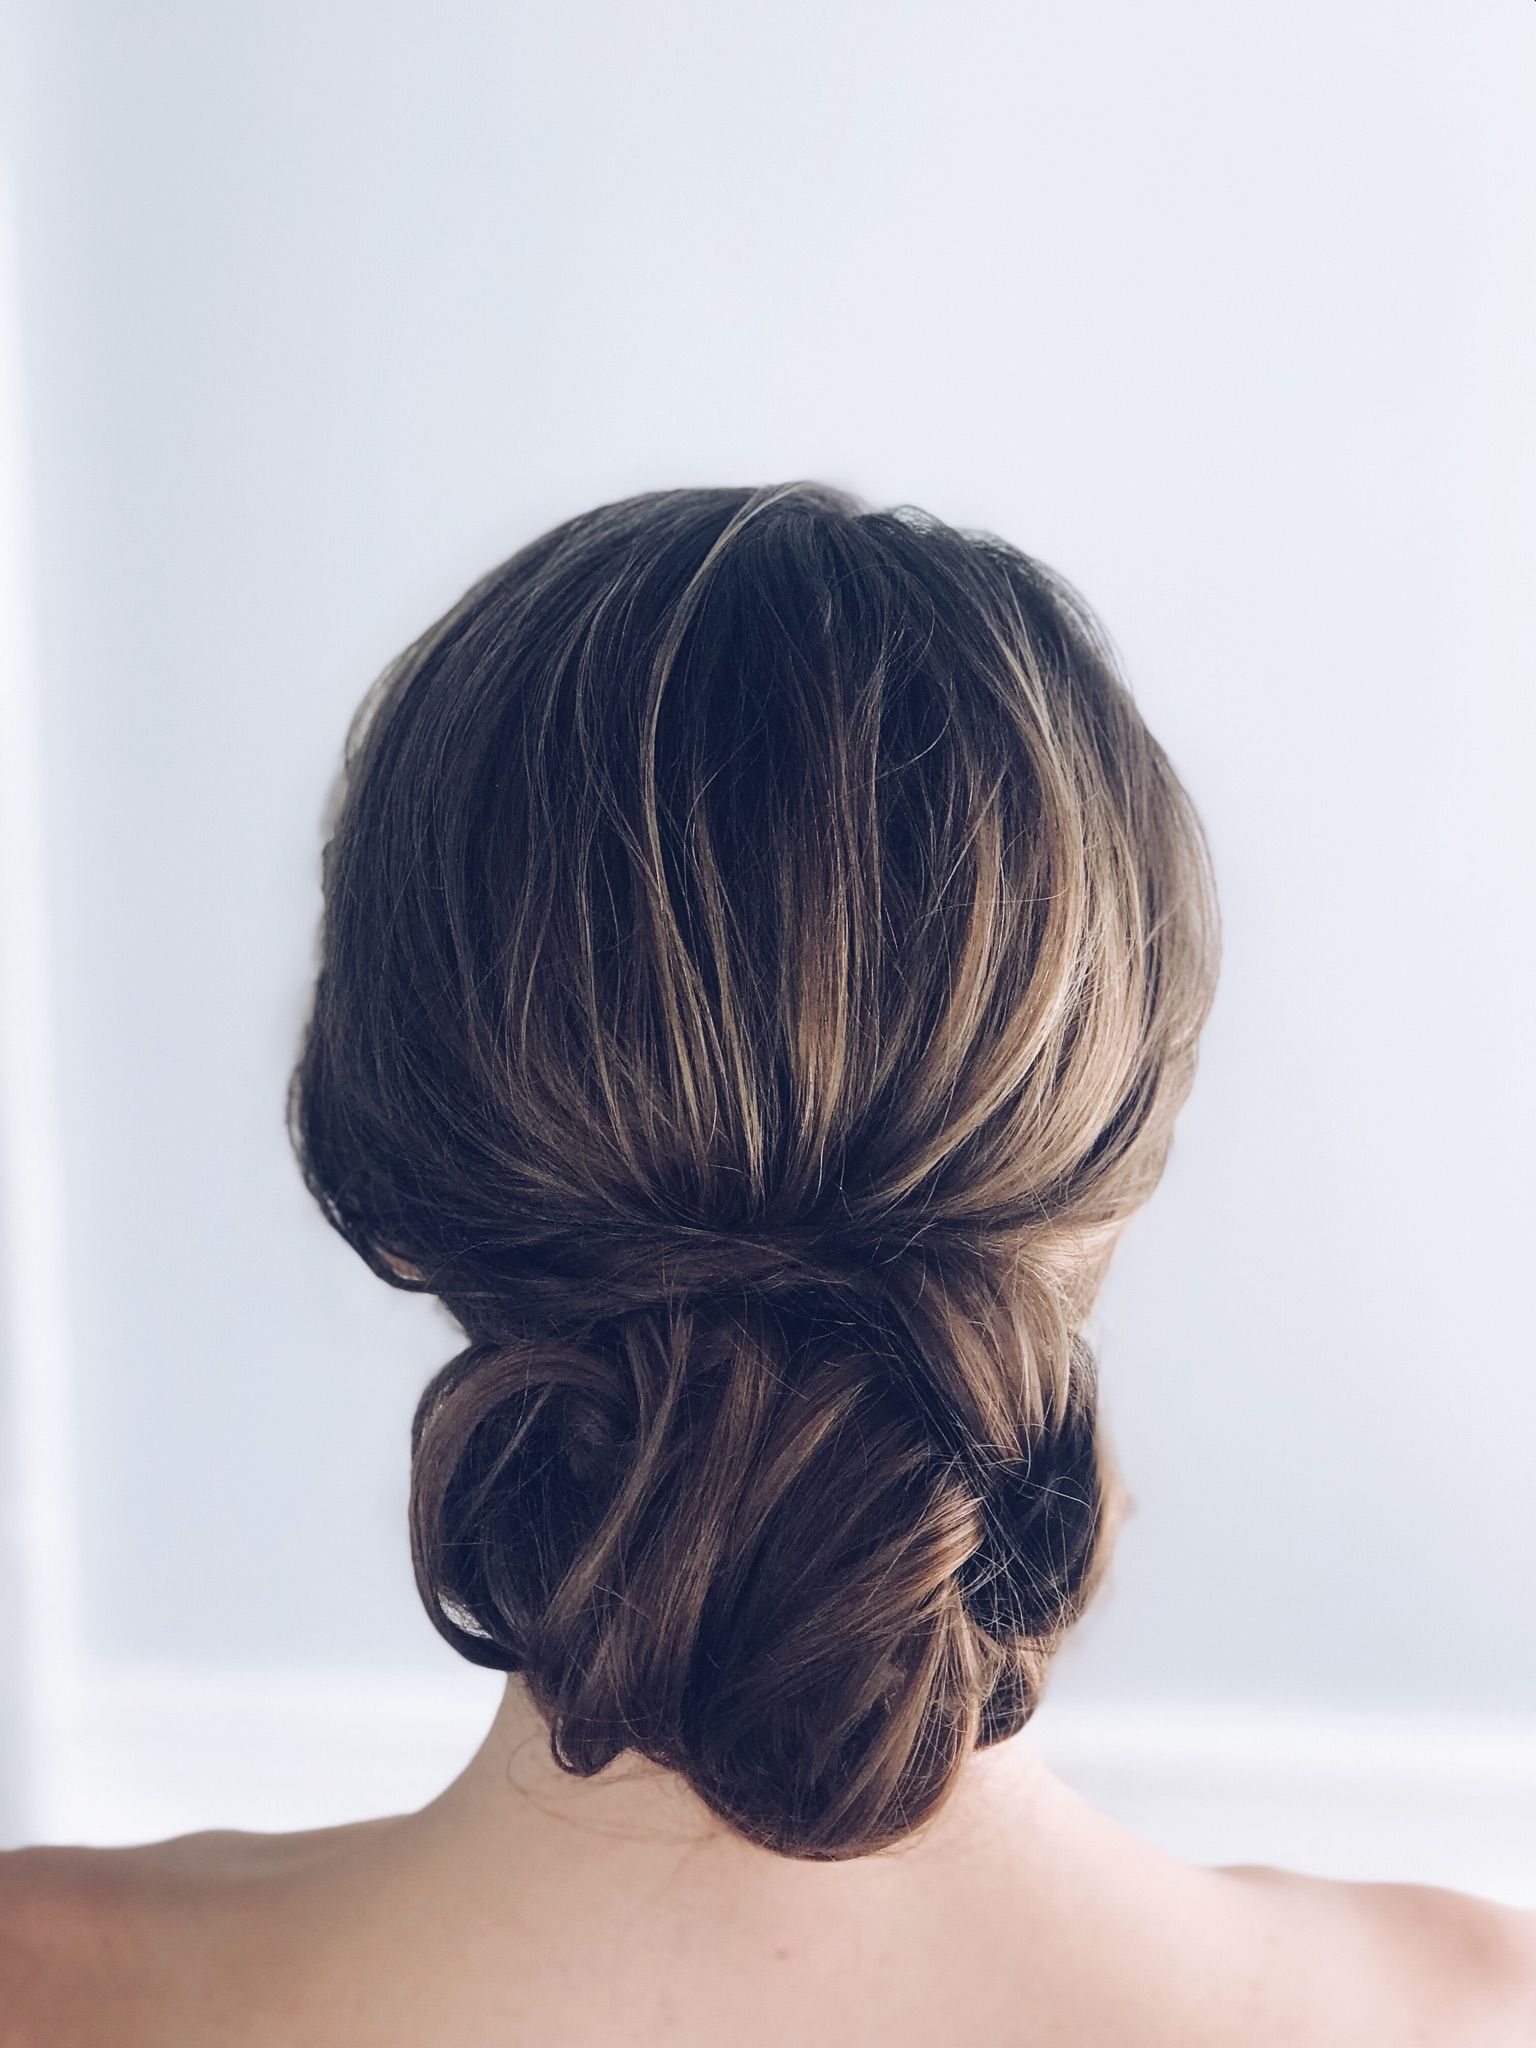 classic, chignon, low bun, wedding hair | wedding hairstyles